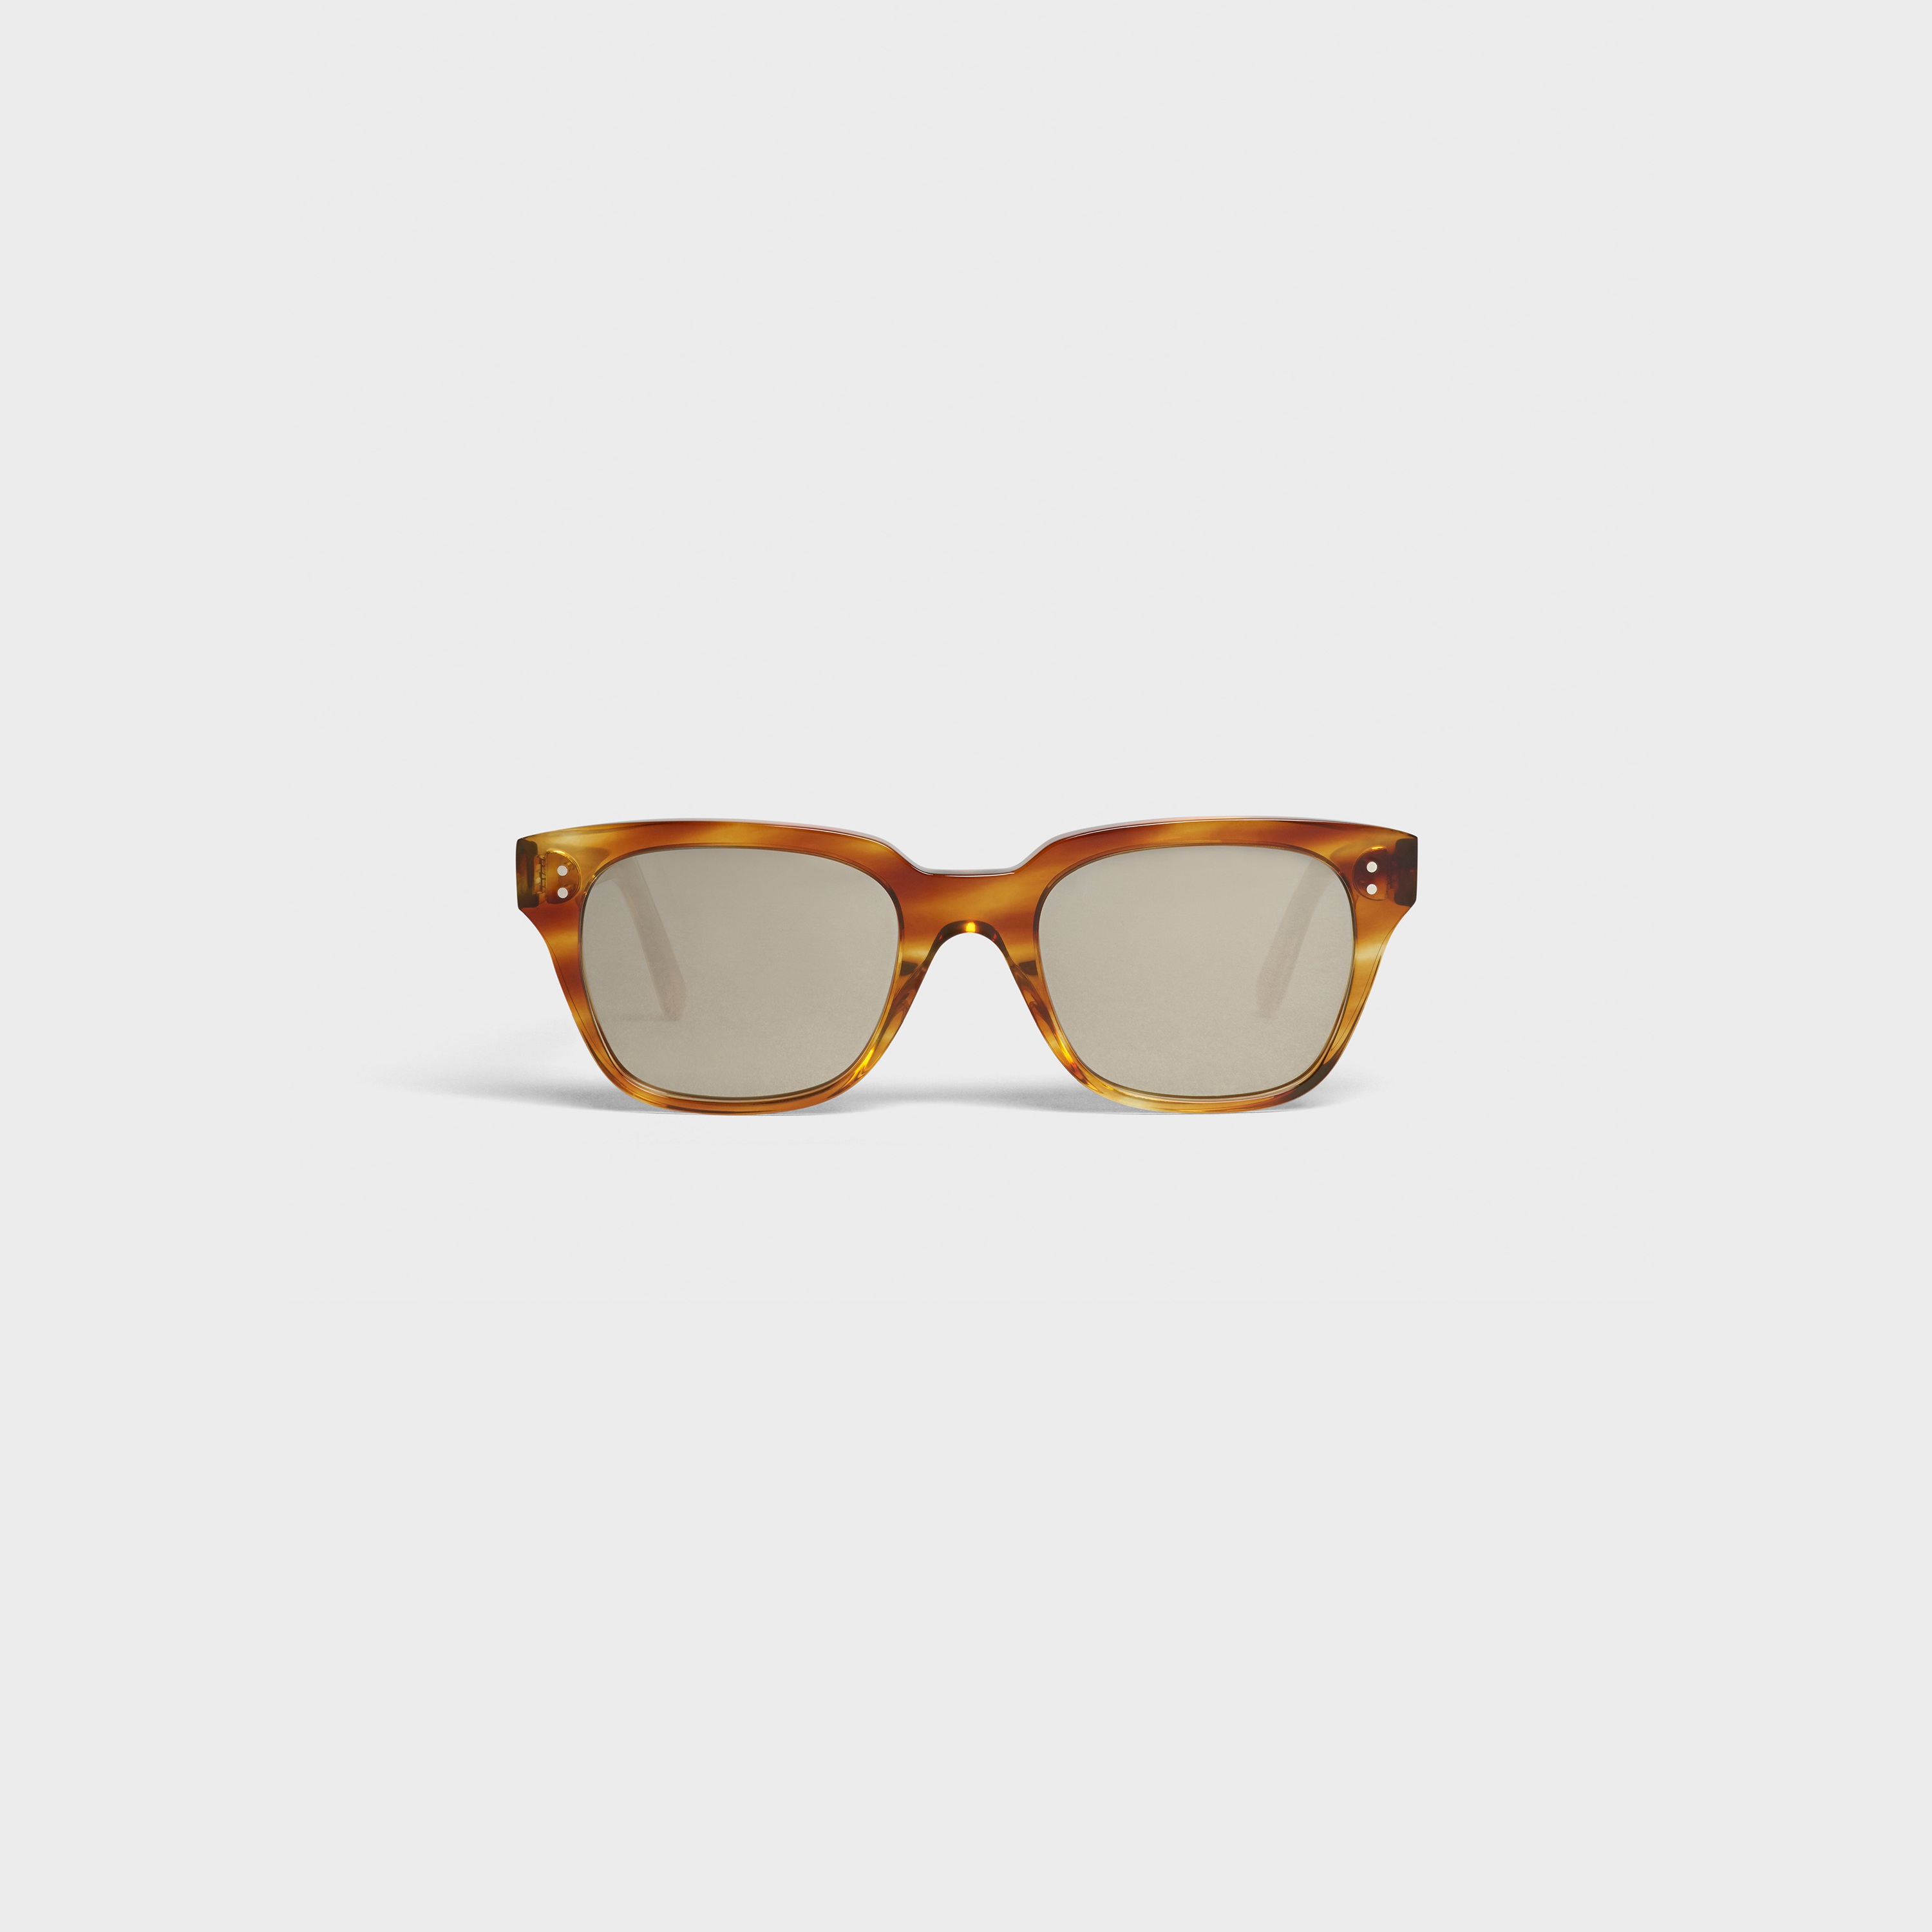 Black Frame 04 Sunglasses in Acetate | CELINE